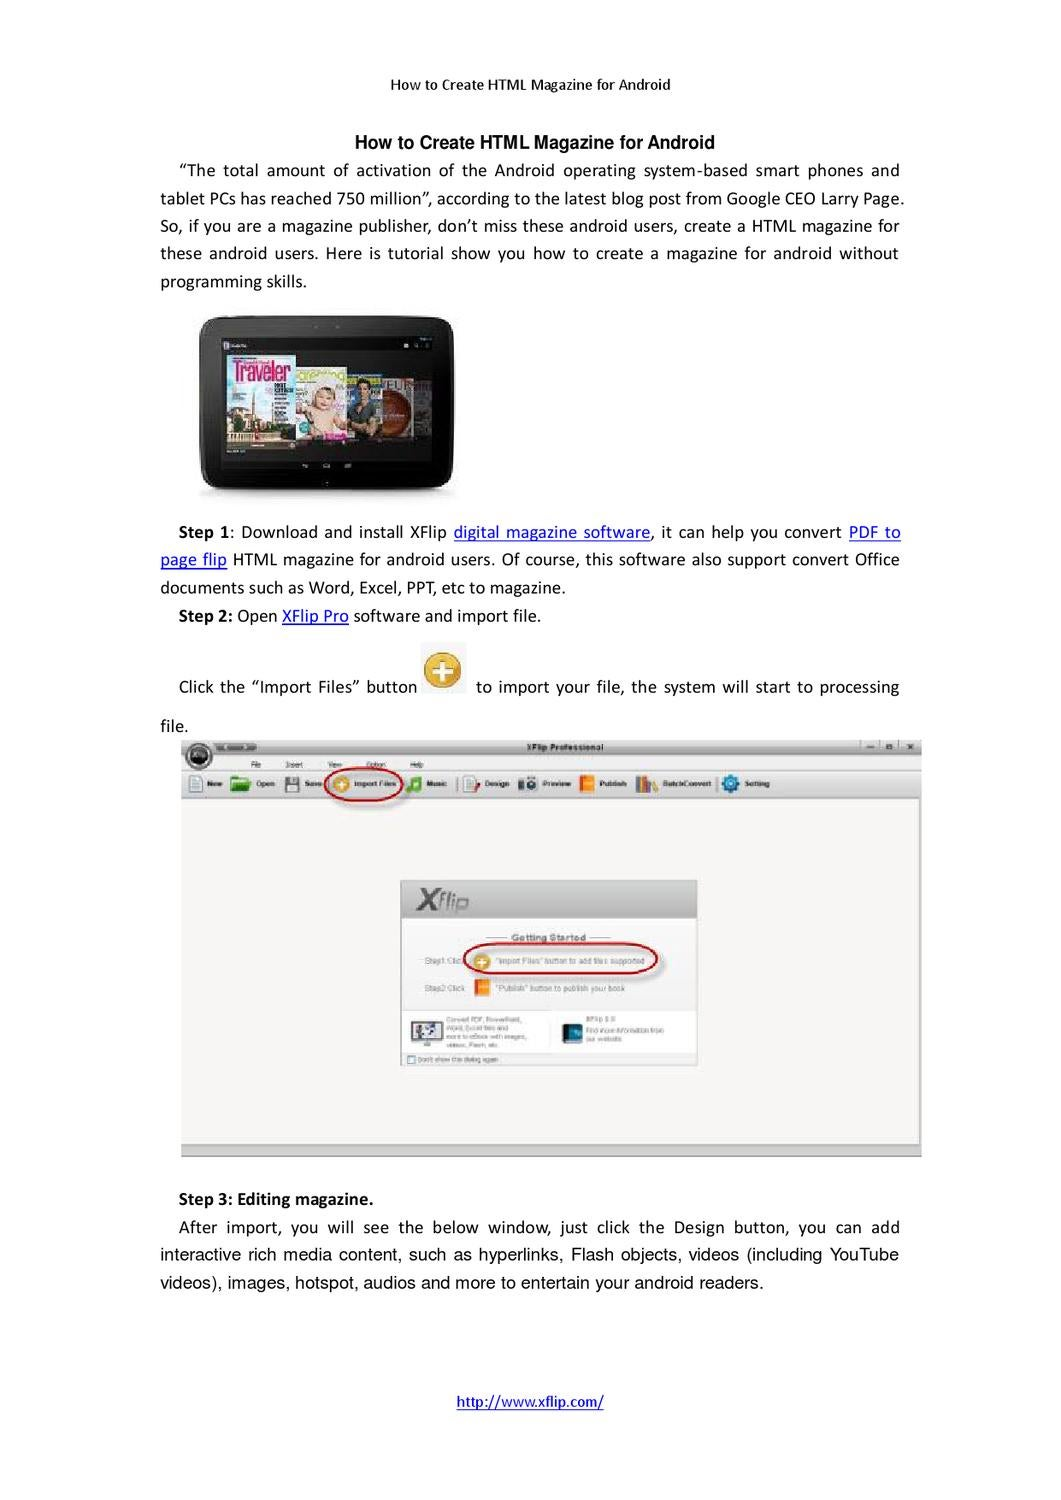 How to Create HTML Magazine for Android by luna leng - issuu